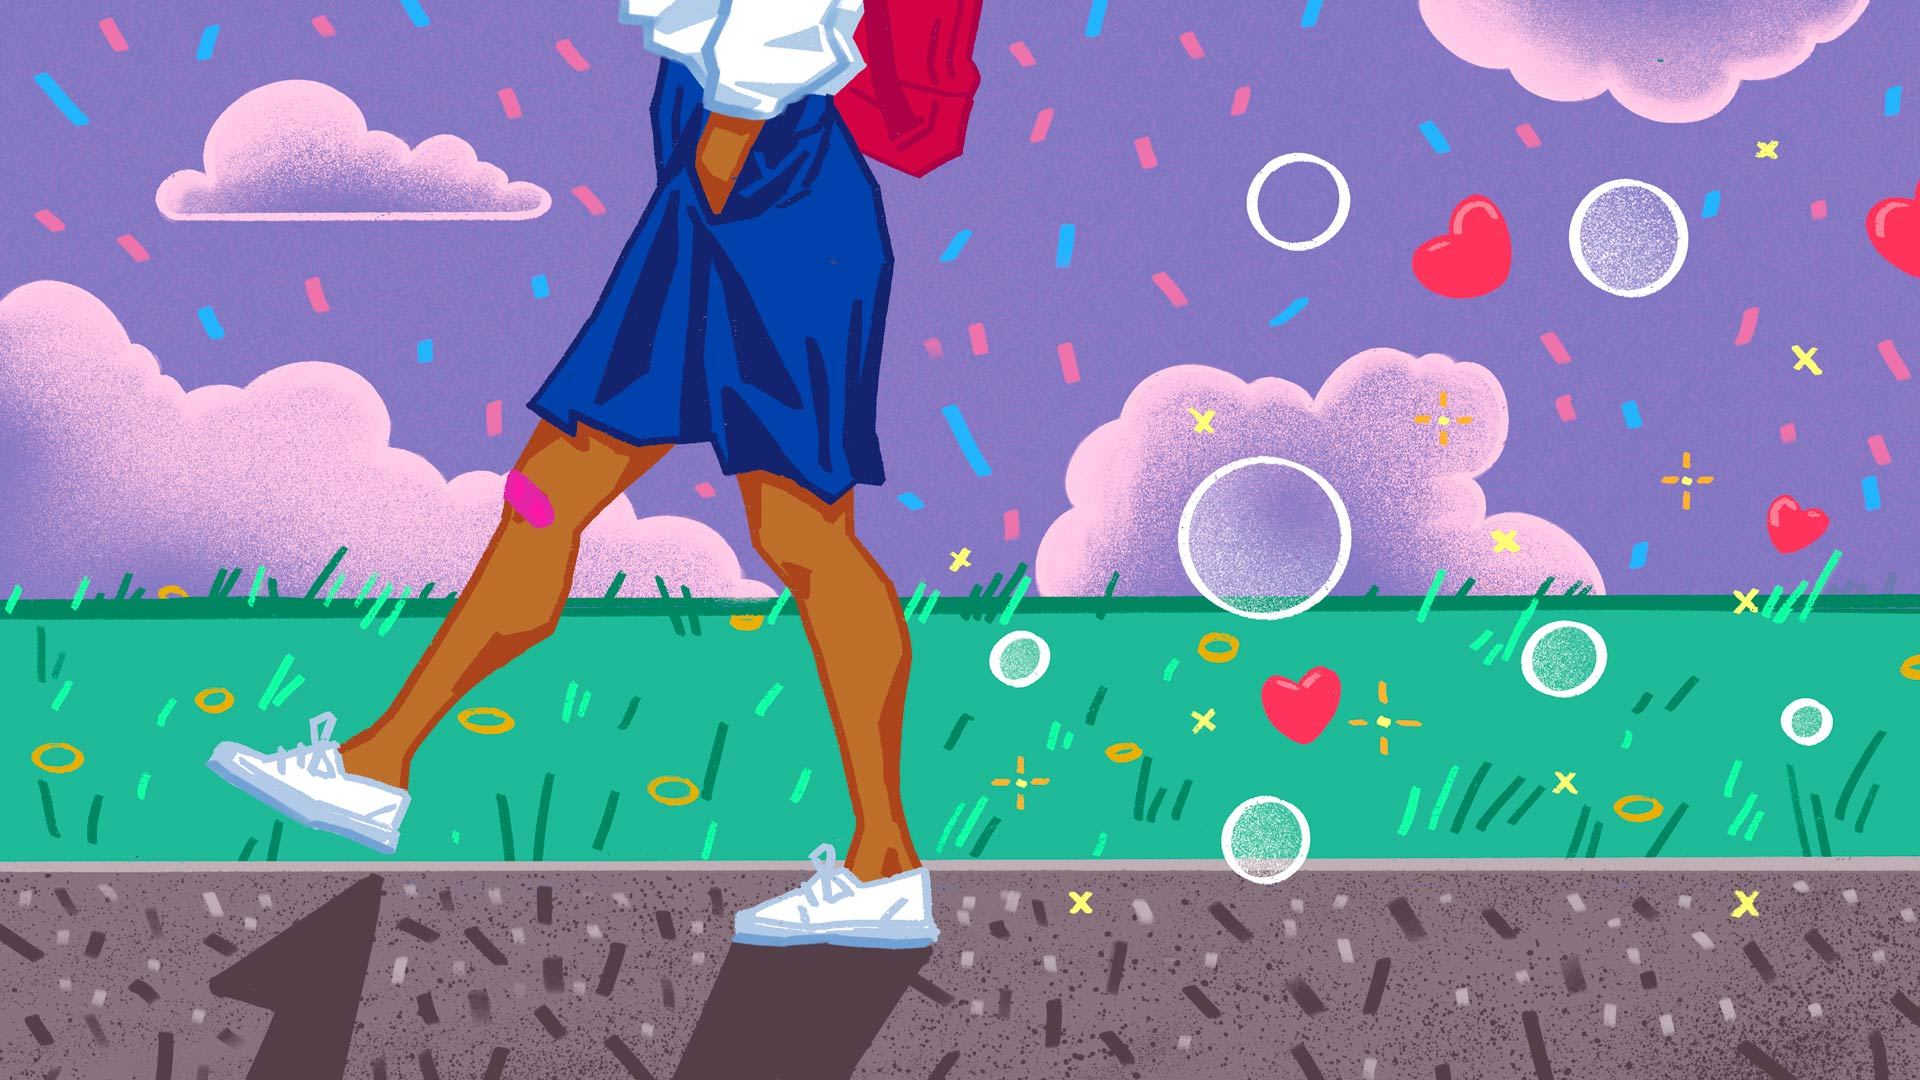 Illustration of a person in profile from the waist down. The person has their hands in the pockets of their blue skirt and seems to be walking casually, swinging their legs. In the background is a field of green grass and a purple sky with pink clouds. Trailing behind the walker is a cloud of bubbles and red hearts.